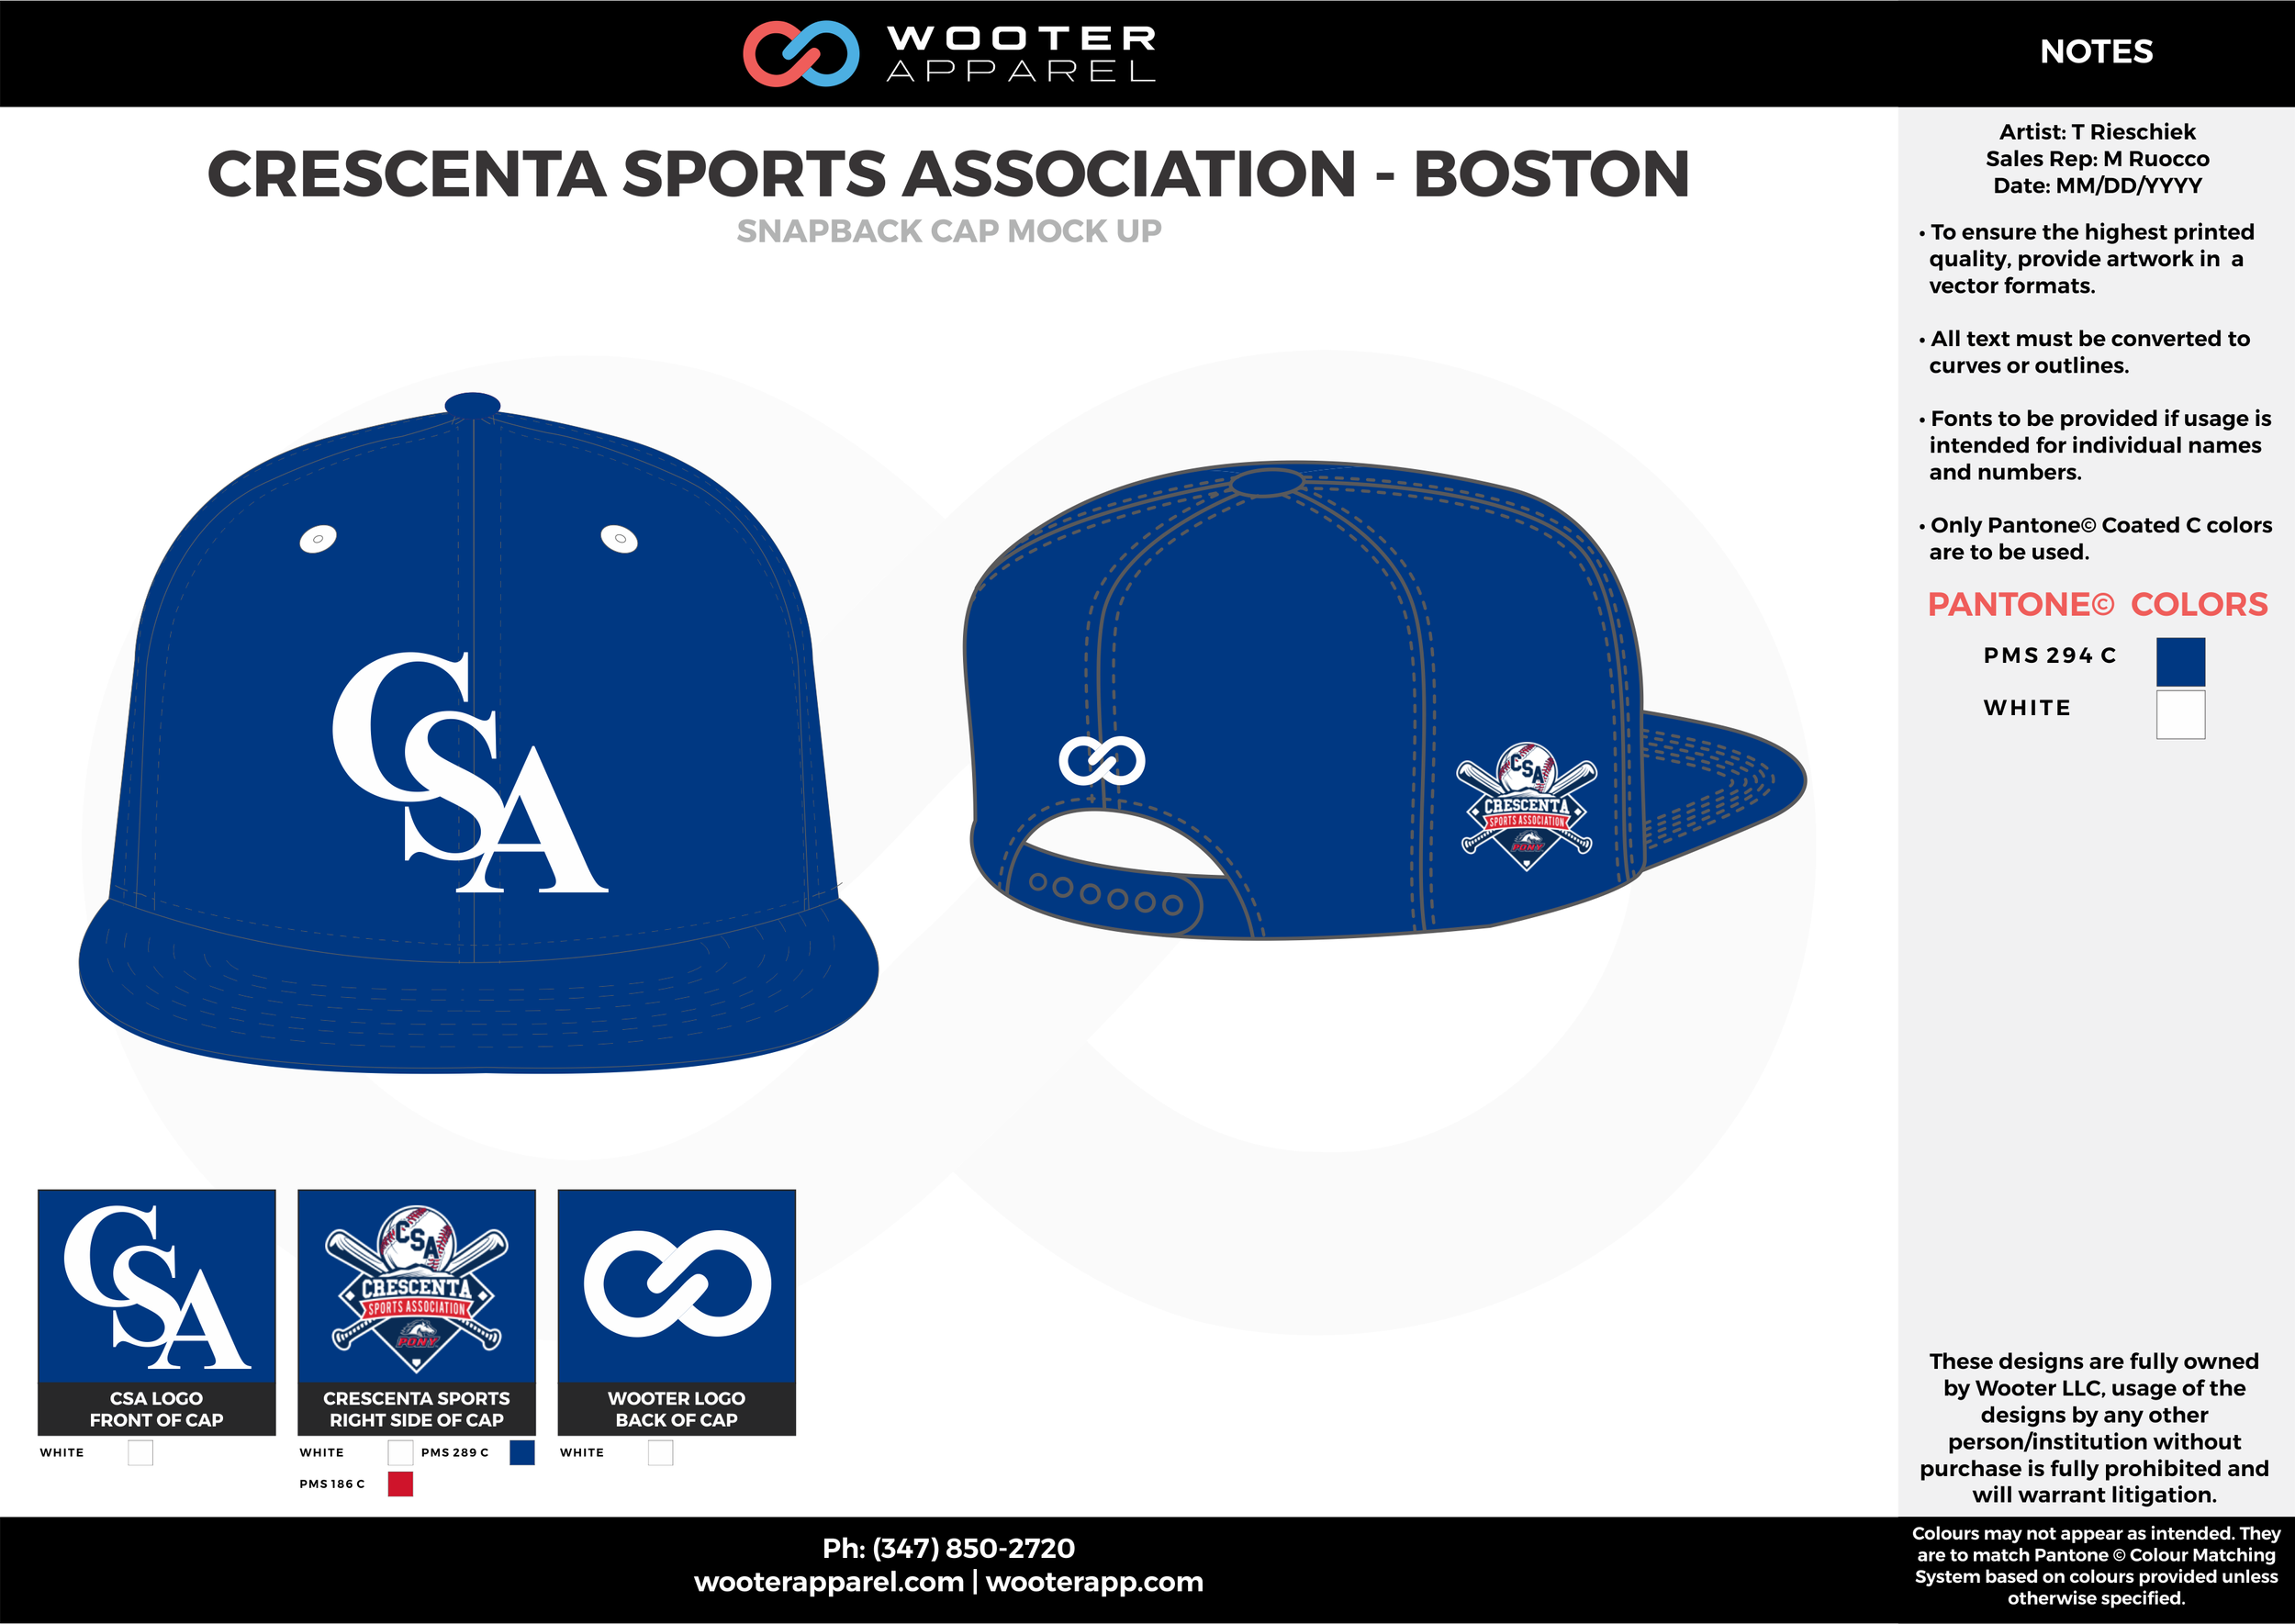 CRESCENTA SPORTS ASSOCIATION - BOSTON Blue and White Basketball Snapback Hat and Cap